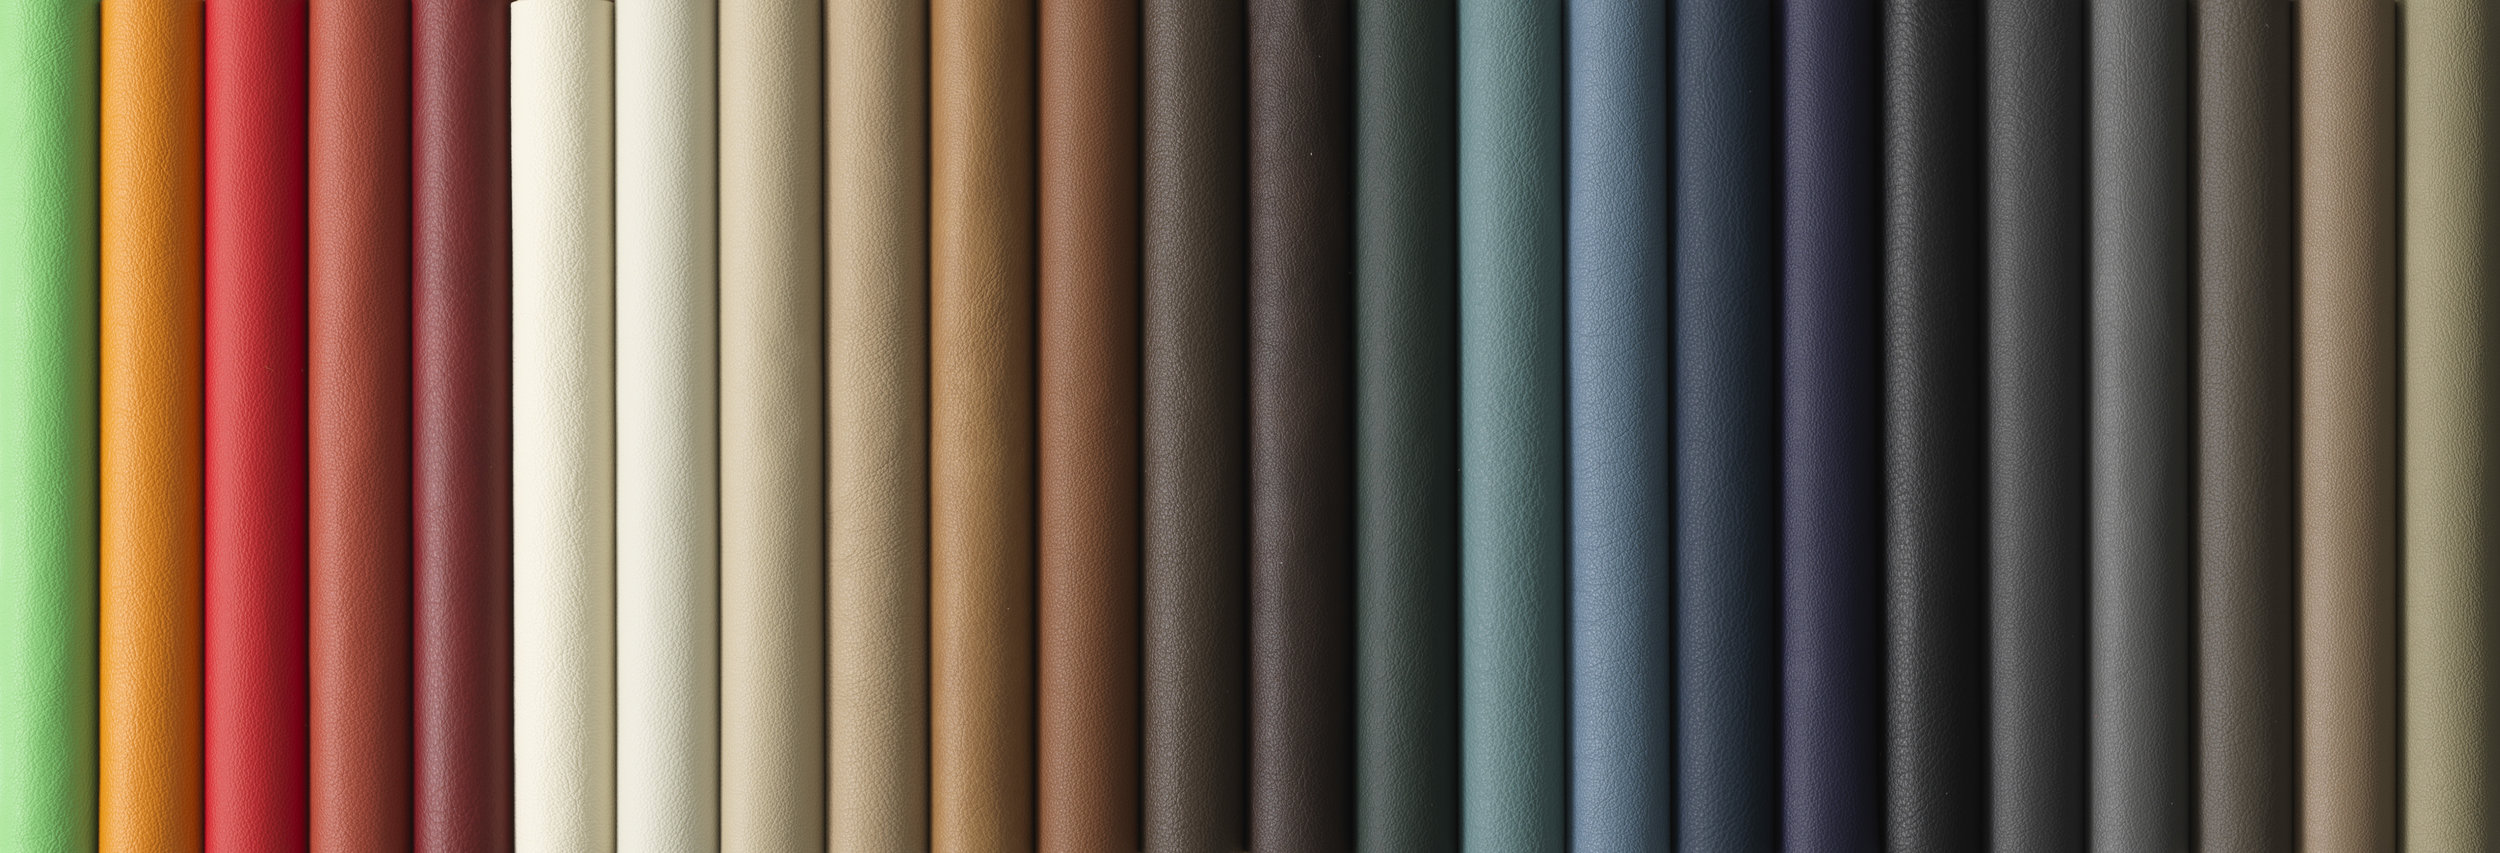 Stressless Paloma Leather Colors